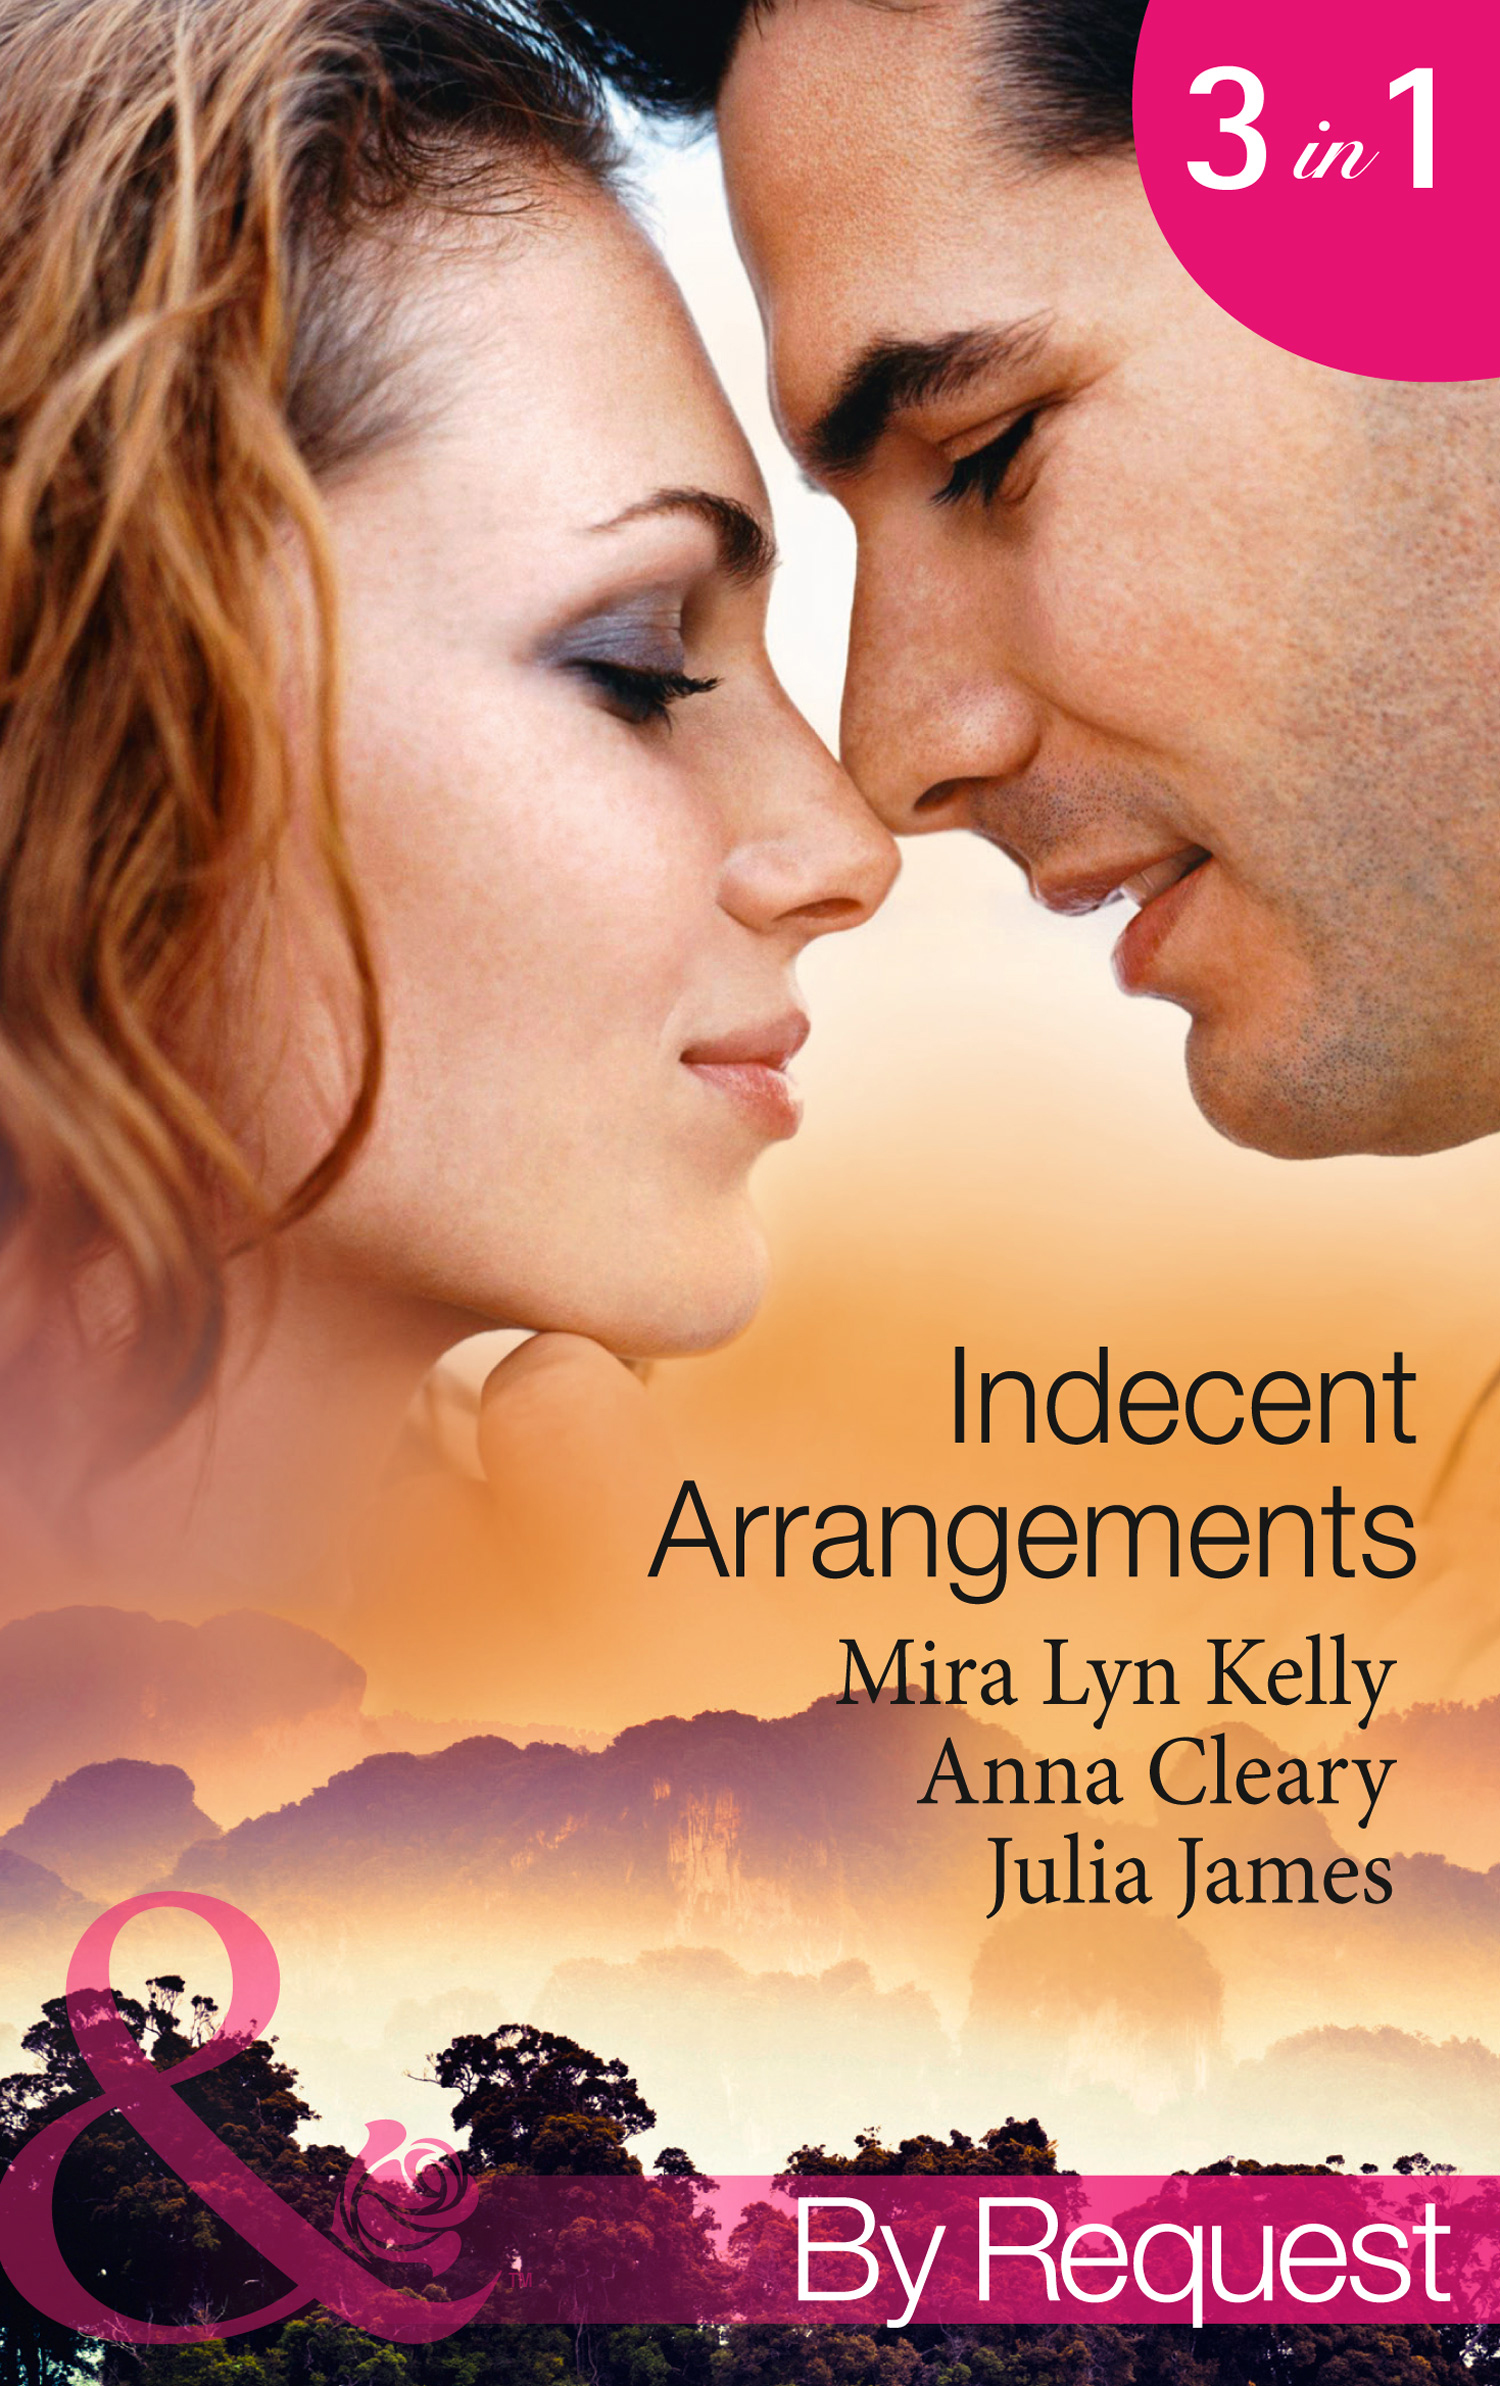 Indecent Arrangements